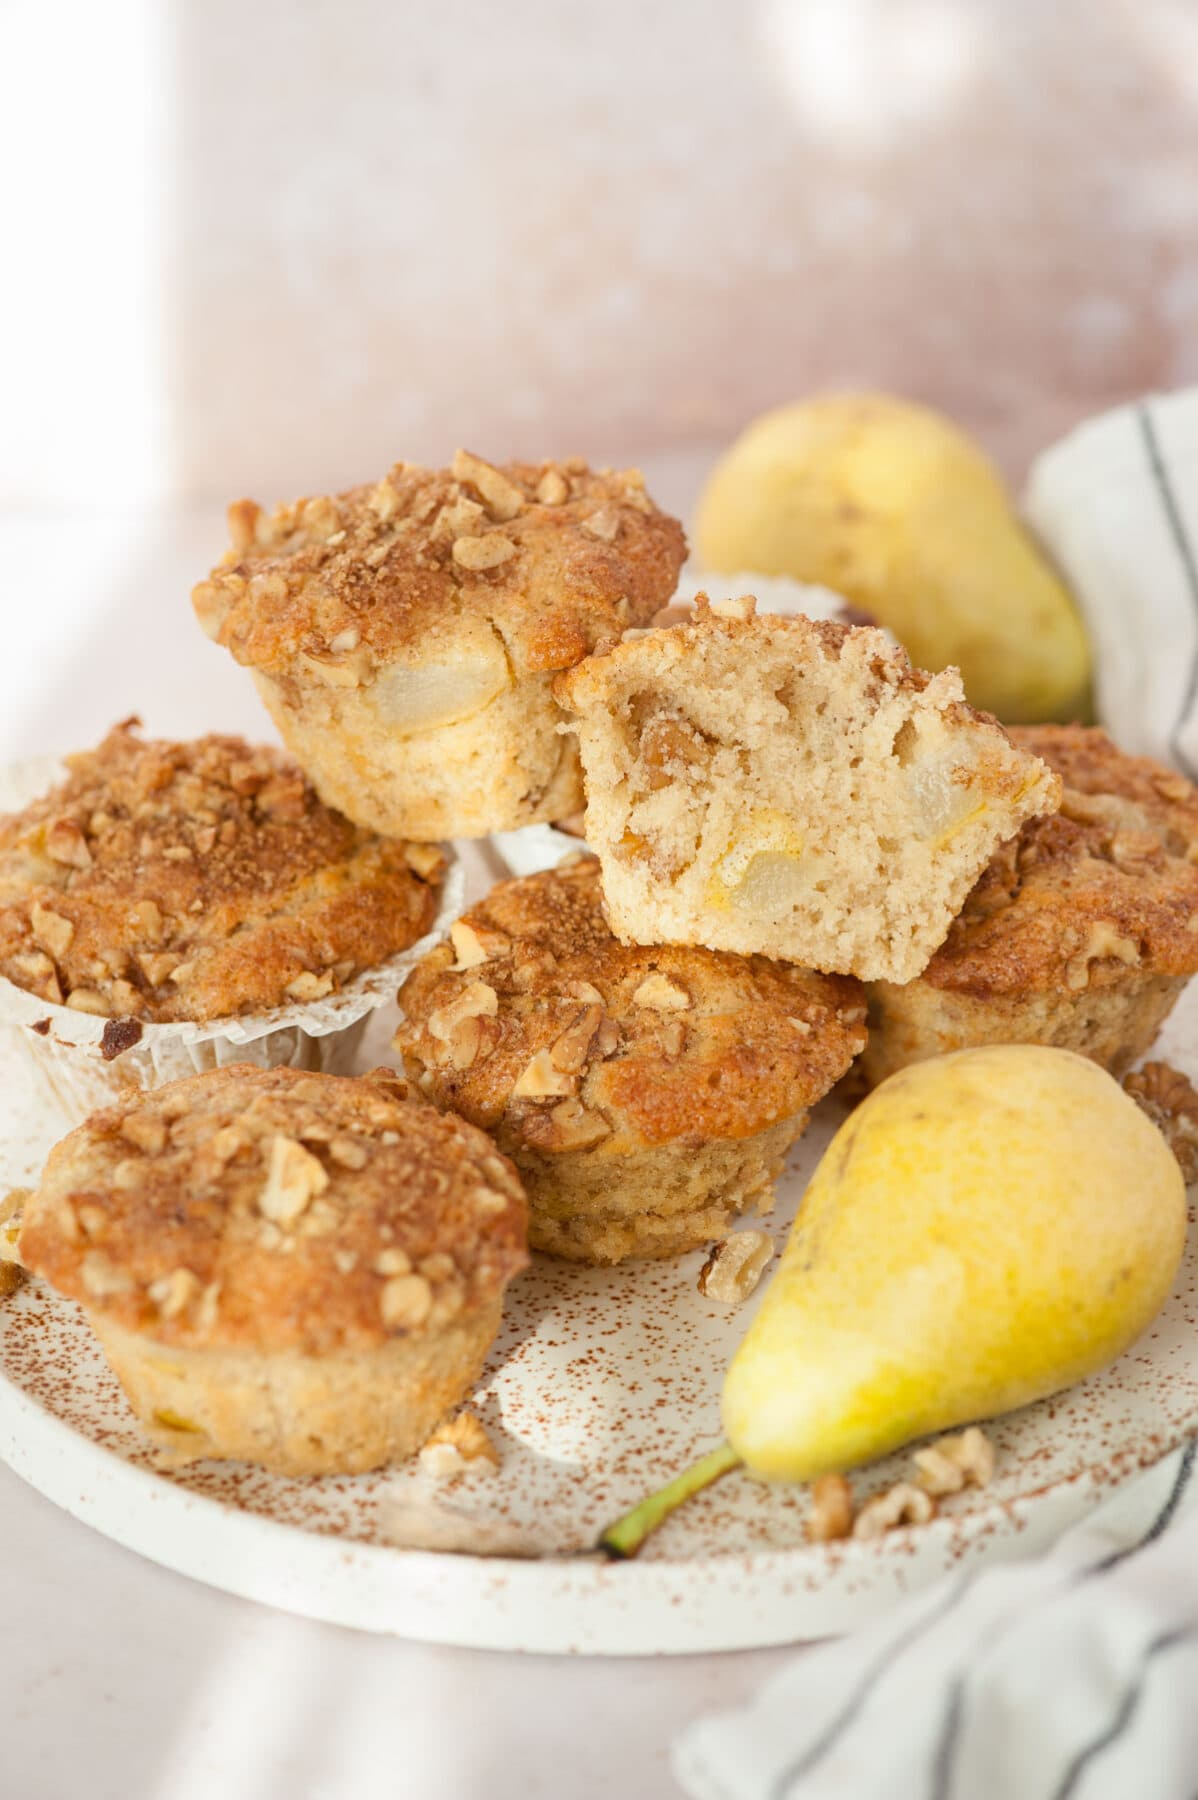 Pear muffins, pears, and walnuts on a white plate. One muffin cut in half.